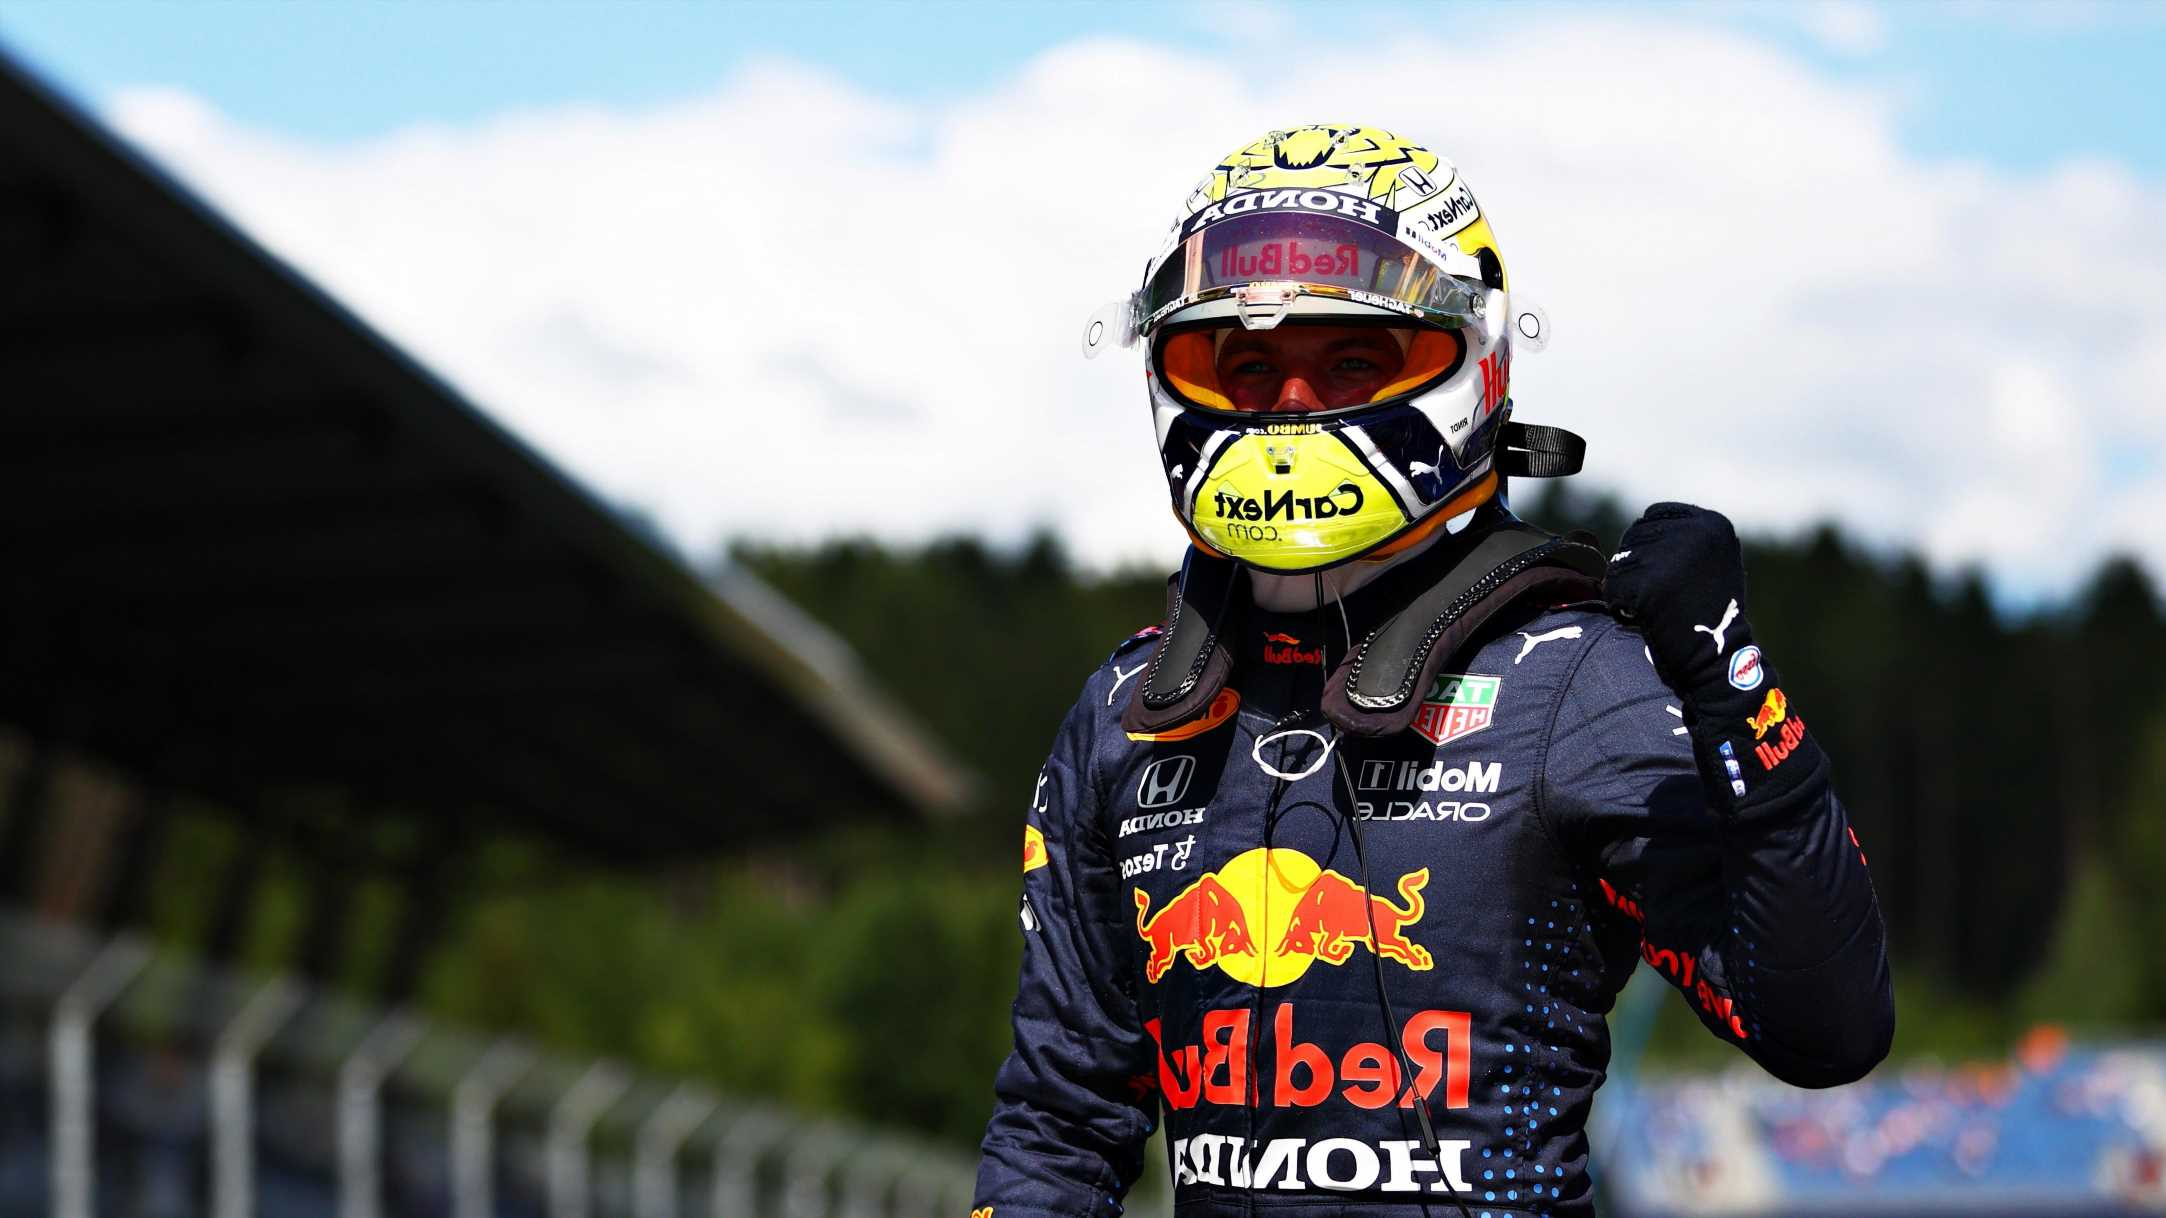 Verstappen on pole for Styrian GP with Hamilton promoted to second on grid after Bottas penalty